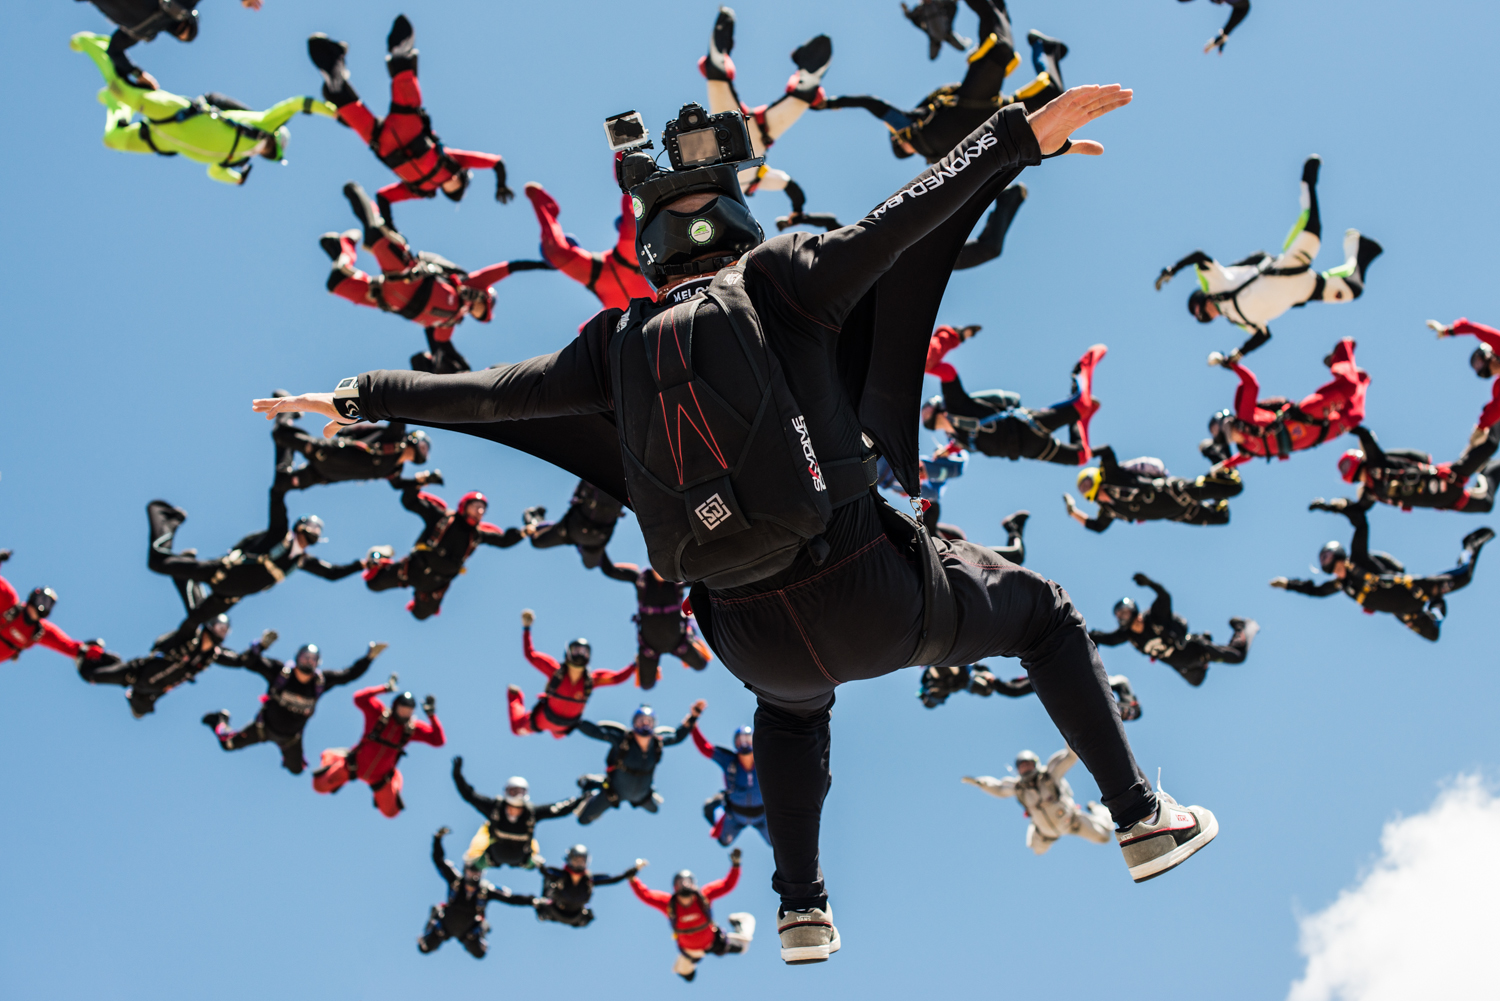 Juan flying on his back below a large formation of skydivers